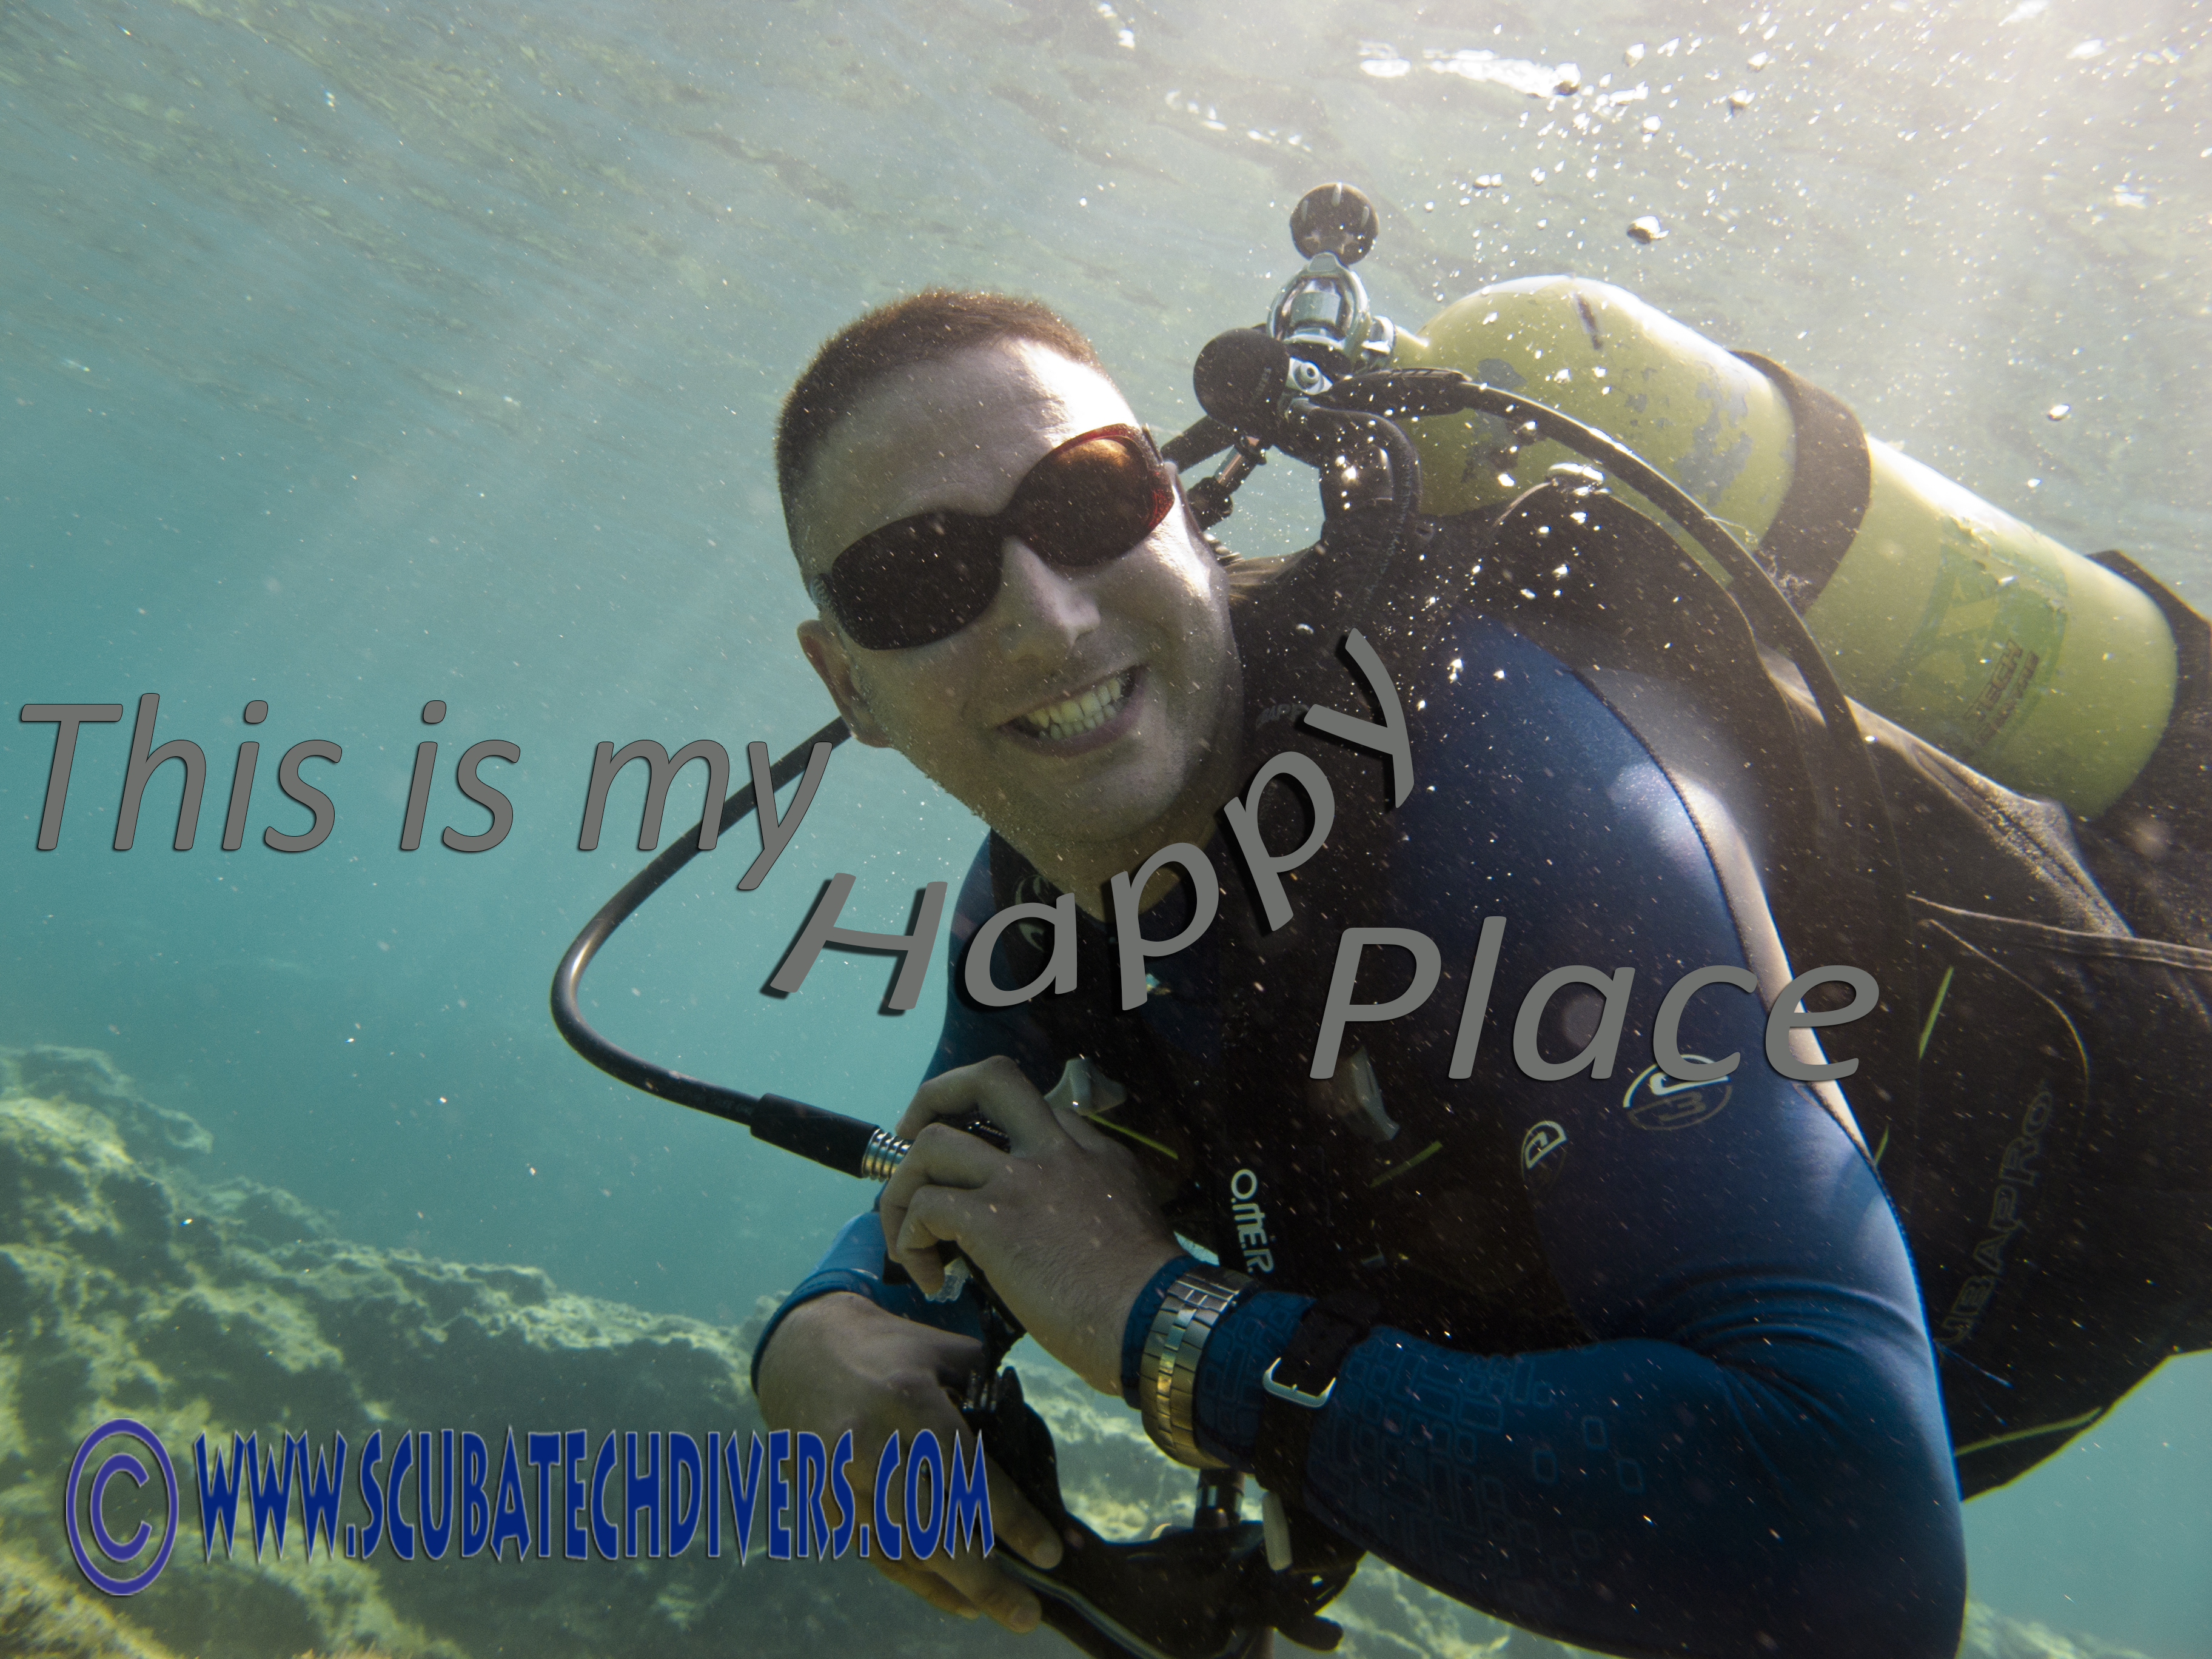 My happy place is scuba diving in Cyprus, where is yours?